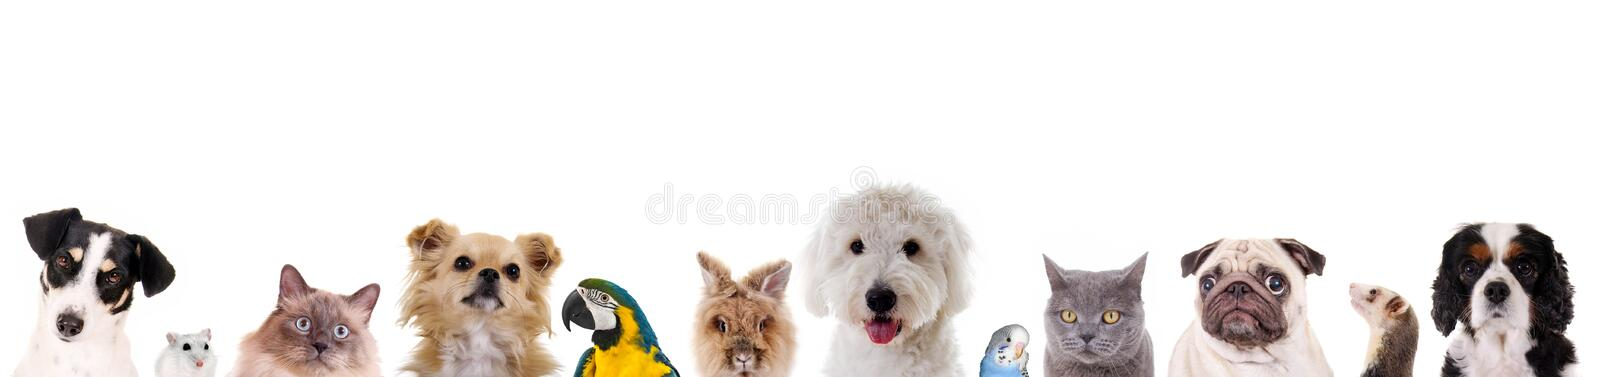 Different animals stock photos